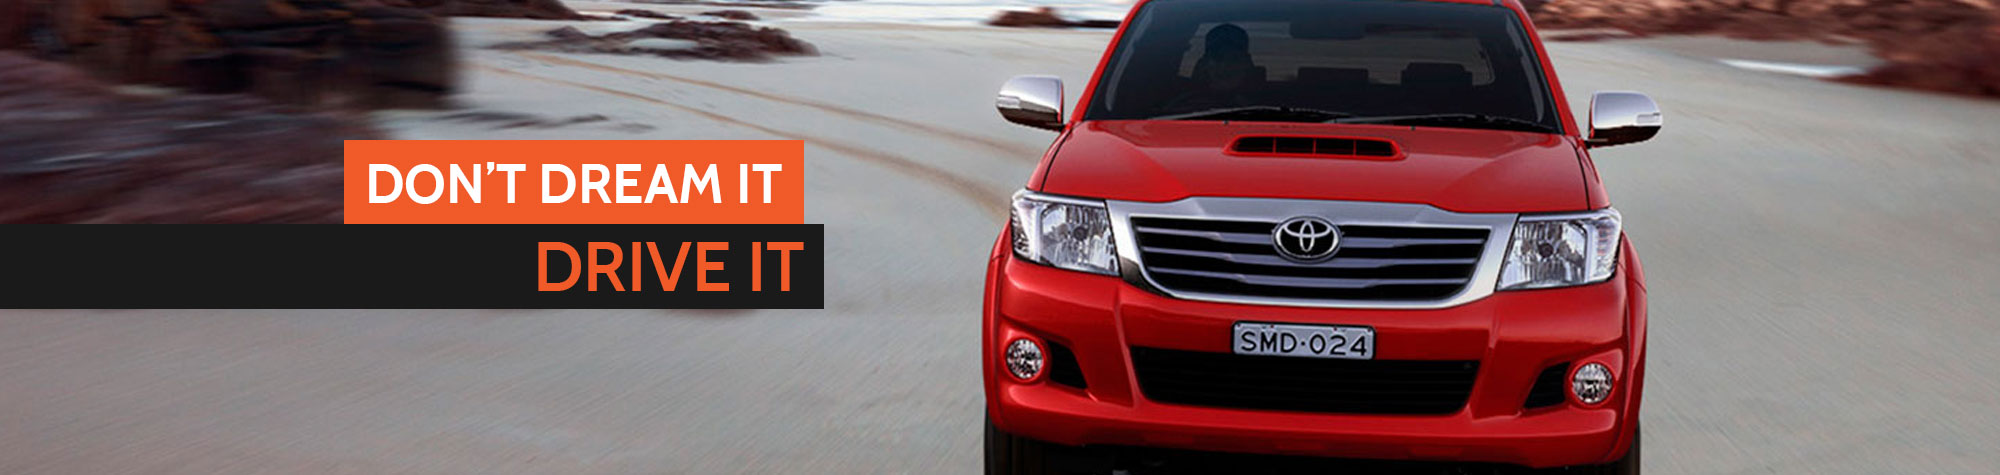 banner-home-hilux